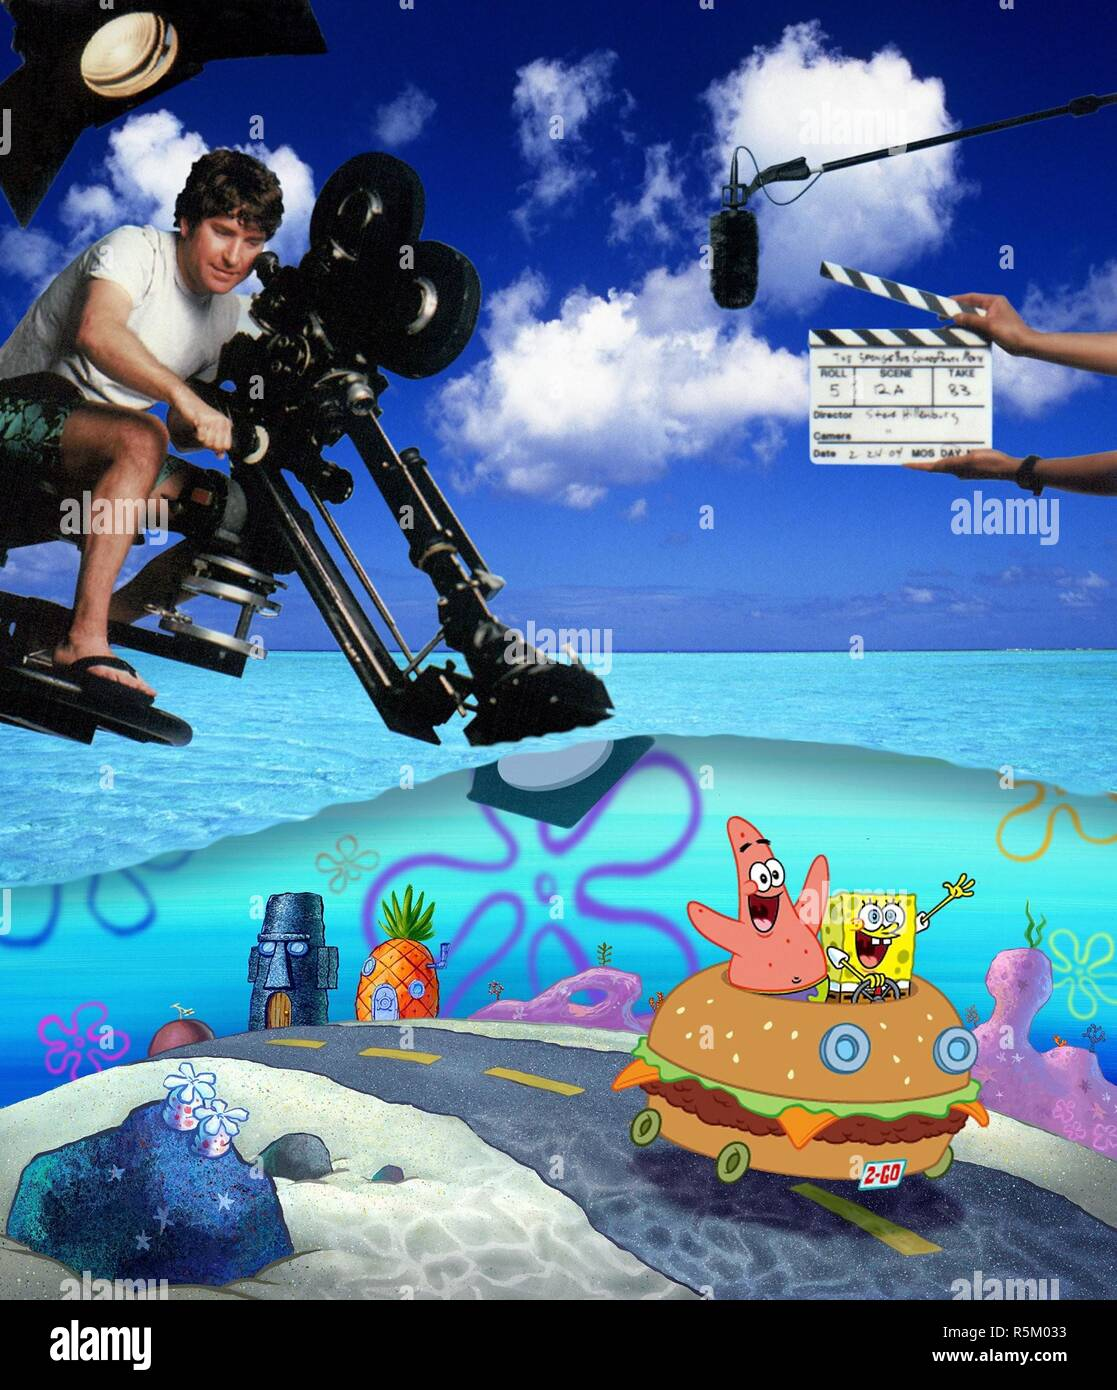 RELEASE DATE: November 19, 2004. MOVIE TITLE: Spongebob Squarepants the Movie. STUDIO: Paramount Pictures. PLOT: There's trouble brewing in Bikini Bottom. Someone has stolen King Neptune's crown, and it look like Mr. Krab, SpongeBob's boss, is the culprit. Though he's just been passed over for the promotion of his dreams, SpongeBob stands by his boss, and along with his best pal Patrick, sets out on a treacherous mission to Shell City to reclaim the crown and save Mr. Krab's life. PICTURED: STEPHEN HILLENBURG on the set. Original film title: THE SPONGEBOB SQUAREPANTS MOVIE. English title: THE  - Stock Image